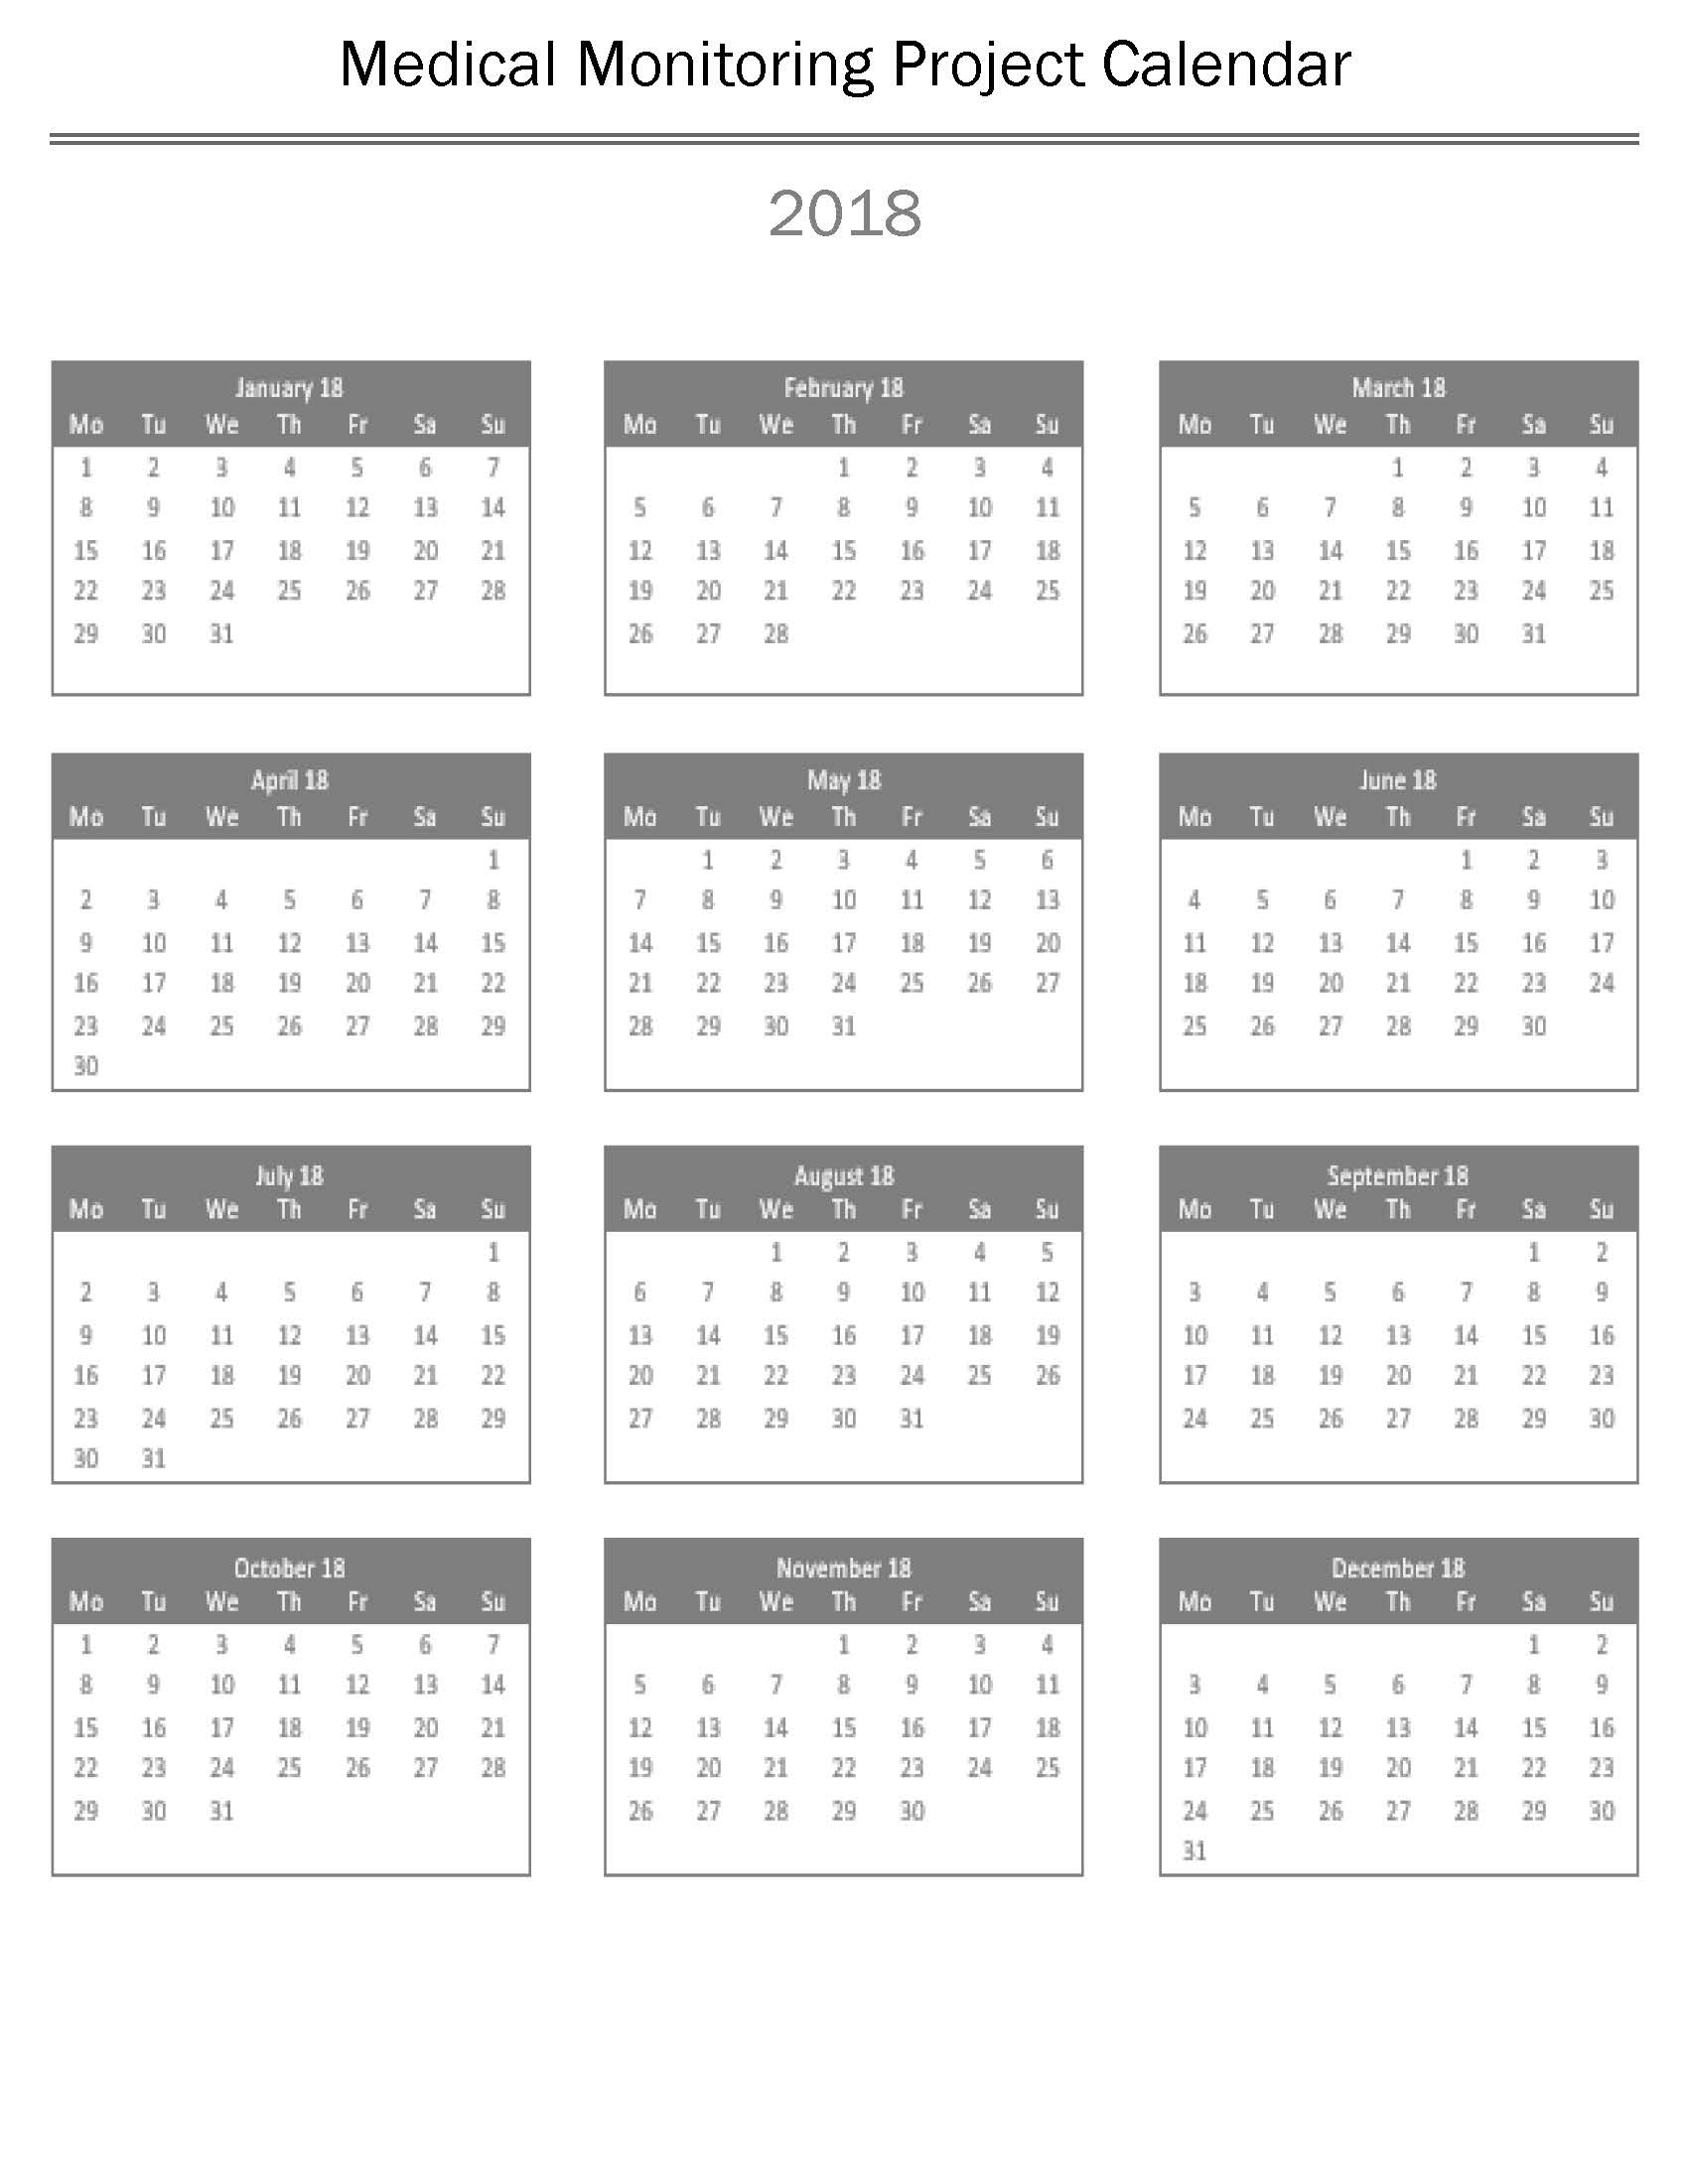 2018 Medical Monitoring Project (MMP) Calendar